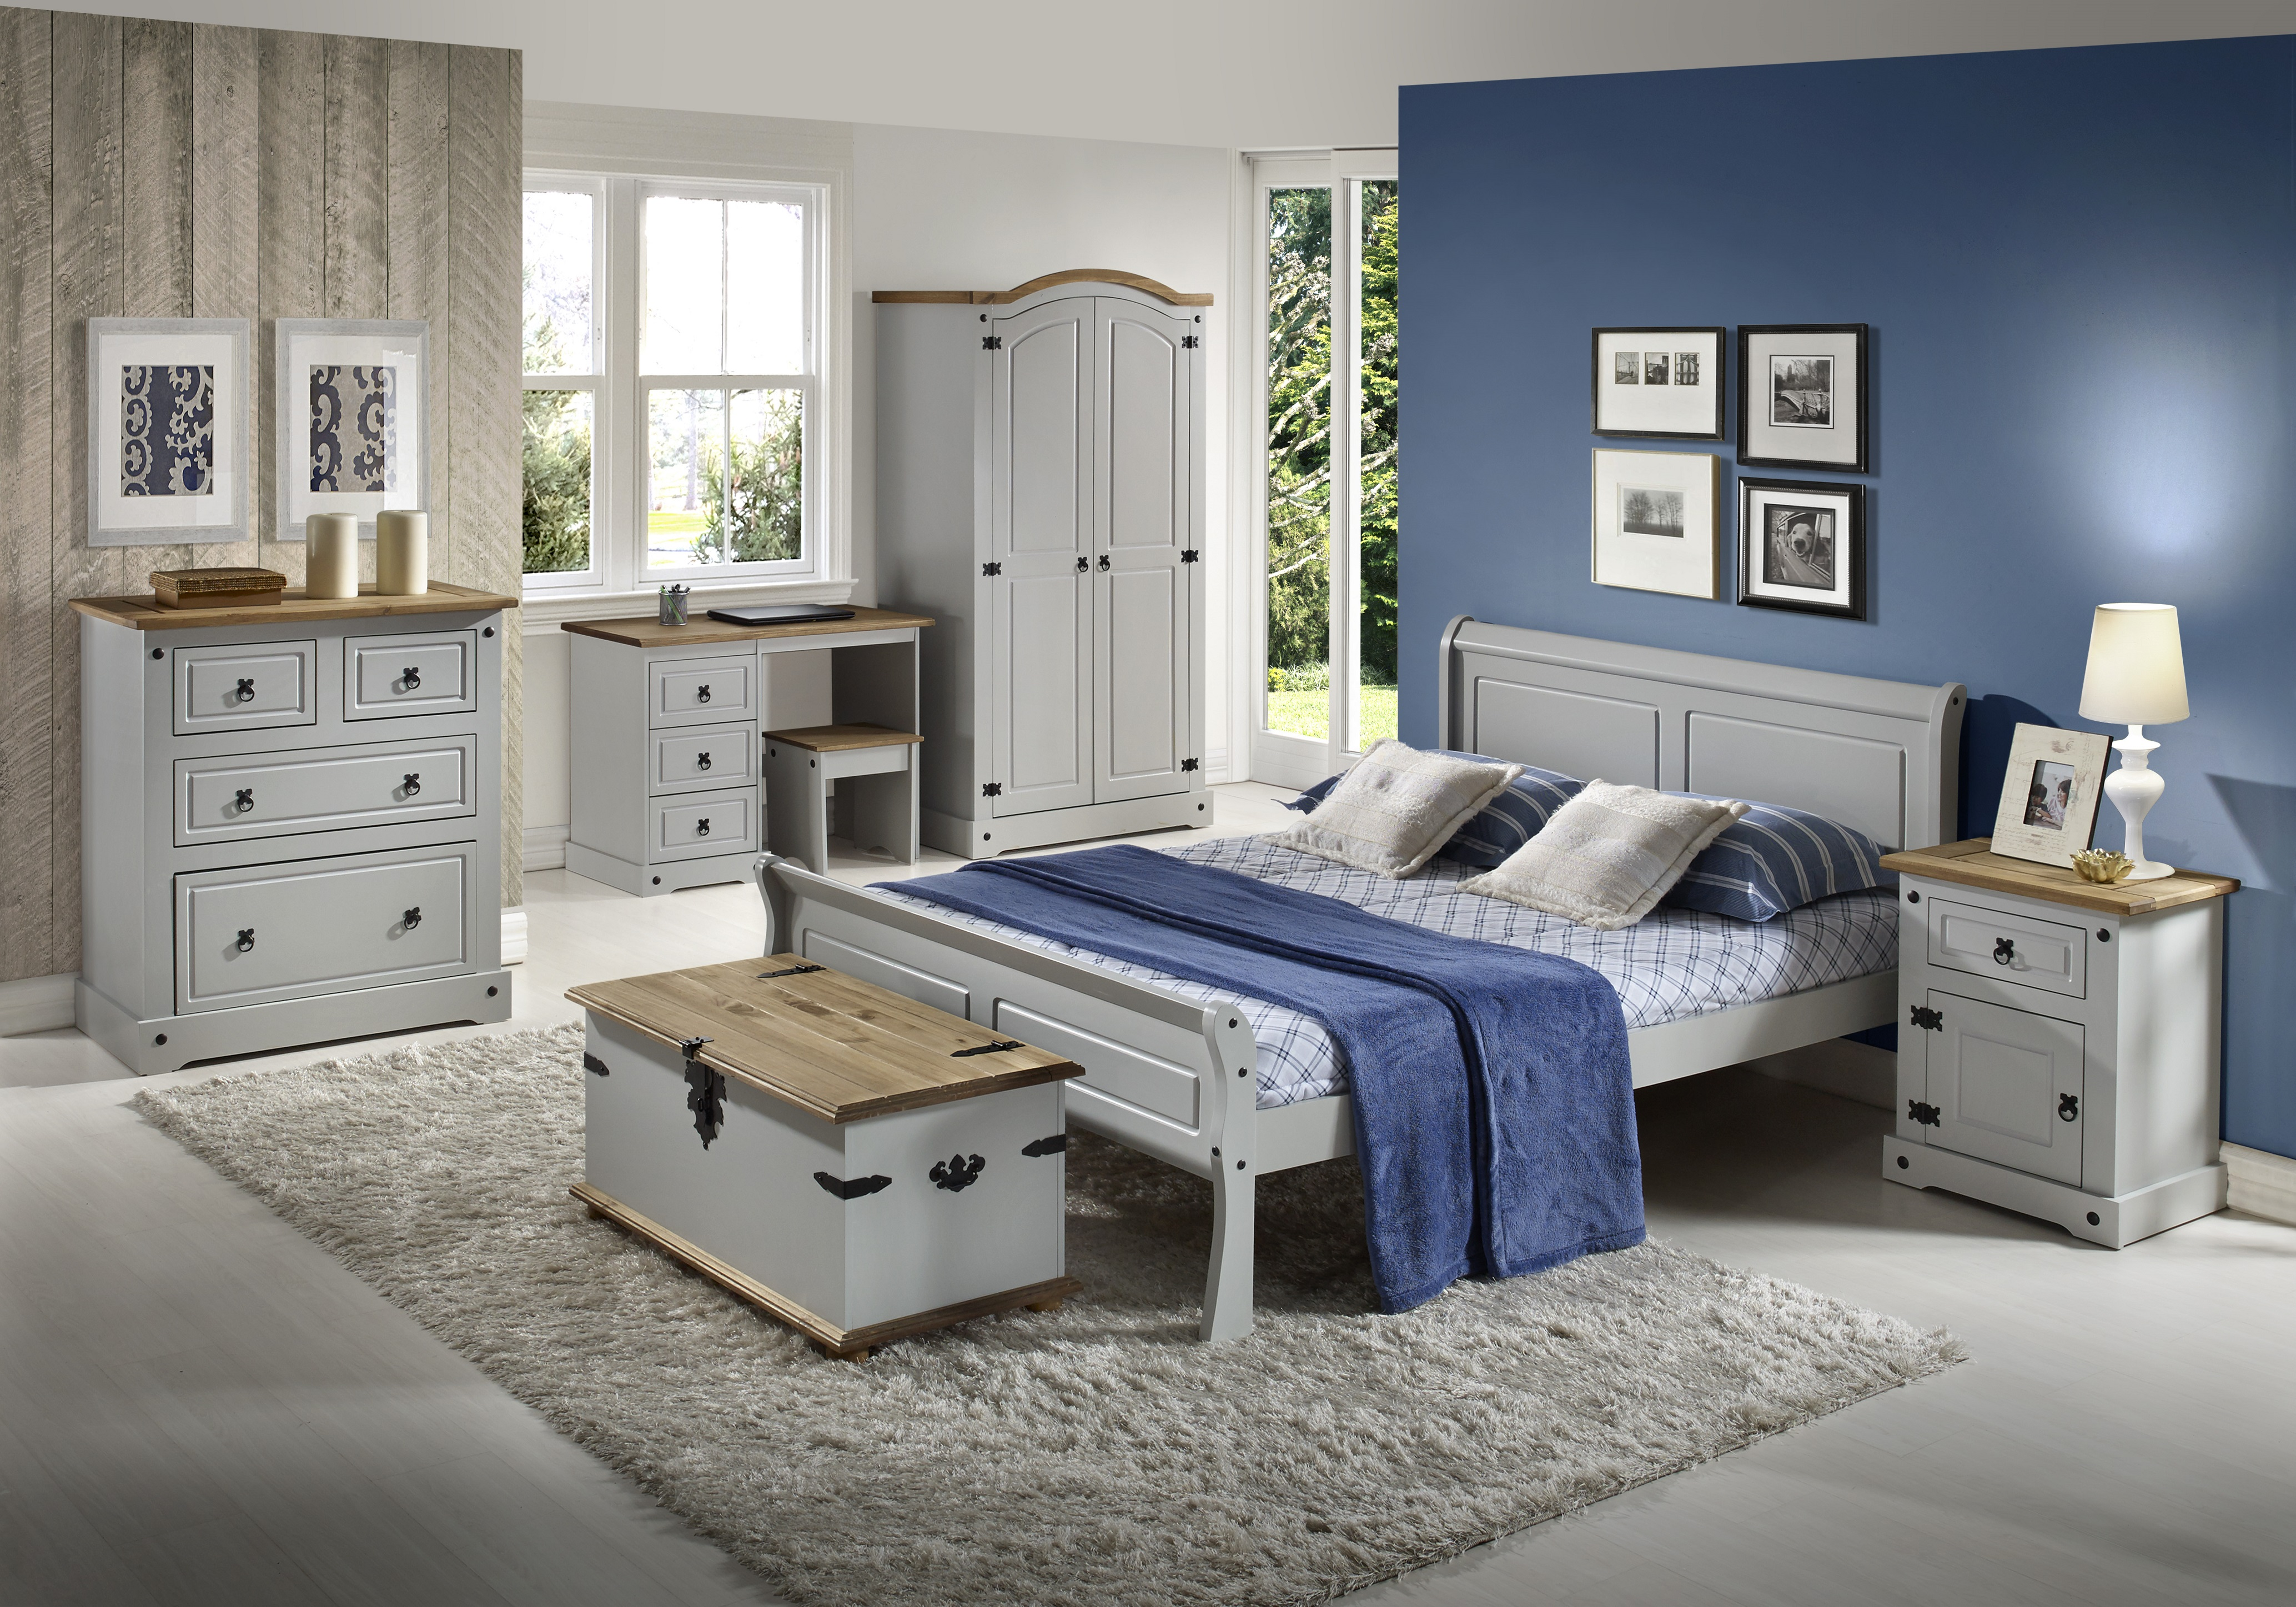 the best attitude 83946 f6c4c Details about Seconique Corona Grey / Distressed Waxed Pine Bedroom Range -  Wardrobe, Chests